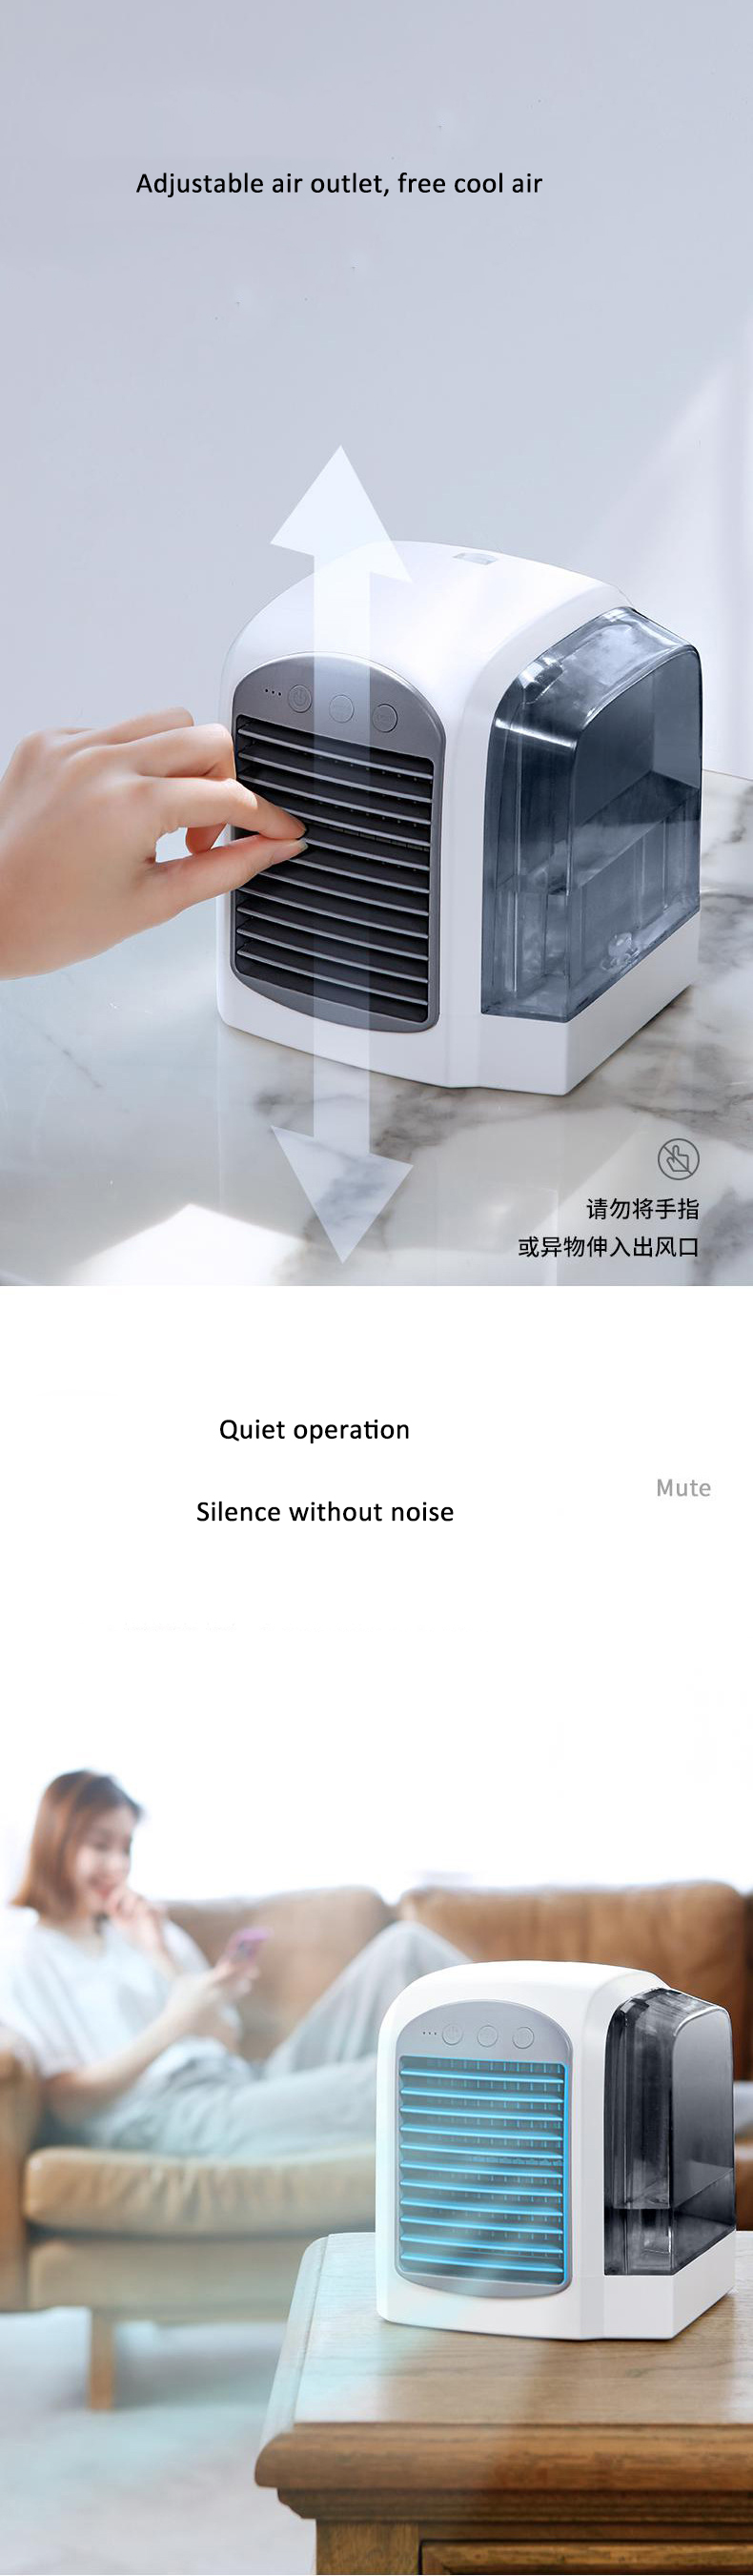 Color : White Chihen Small Fan USB3 Speed Cooling Fan Mini Portable air Cooler Silent Electric Fan humidifier Spray Cooling Handheld